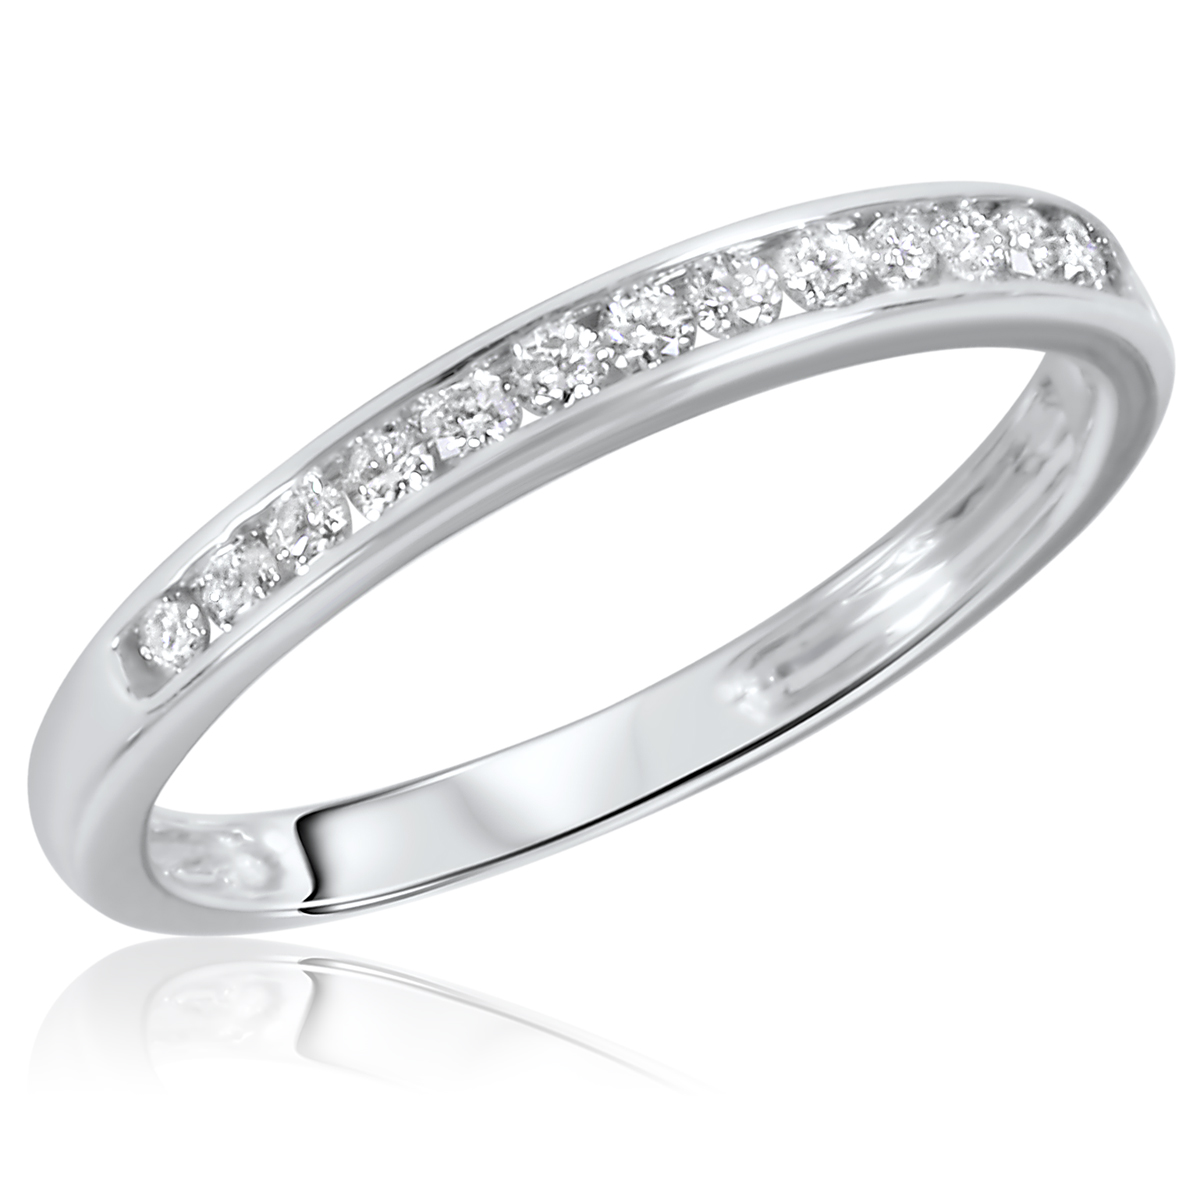 Wedding Rings White Gold Carat T W Diamond Women S Wedding Ring 14K White Gold